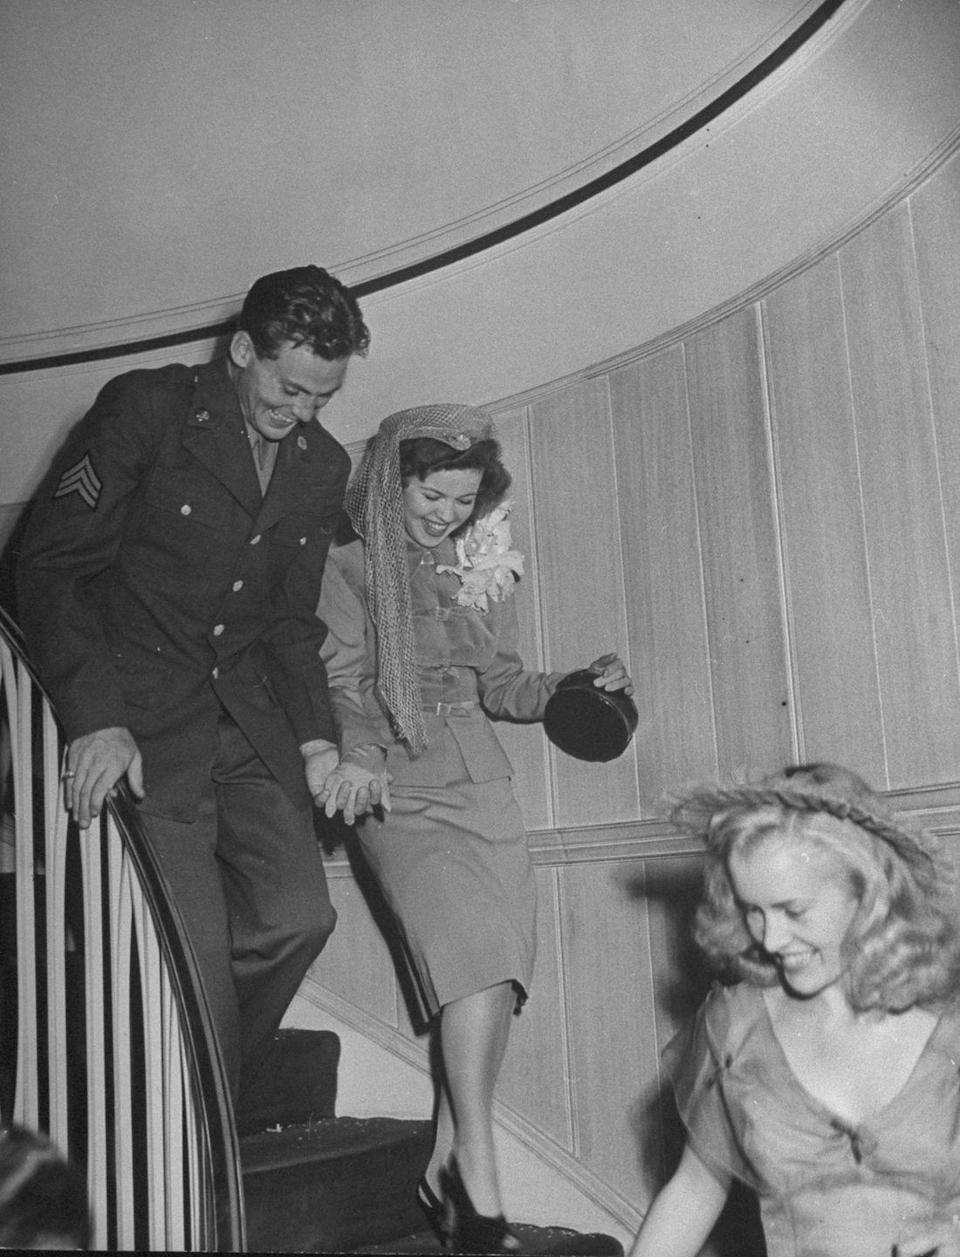 <p>After hosting a large reception in her Hollywood home, Shirley Temple traded her long-sleeve satin wedding gown for a grey belted suit, as she and her new husband, Army Sargent John Agar, departed for their honeymoon. The couple was all smiles as their friends and family sent them off as newlyweds. <br></p>